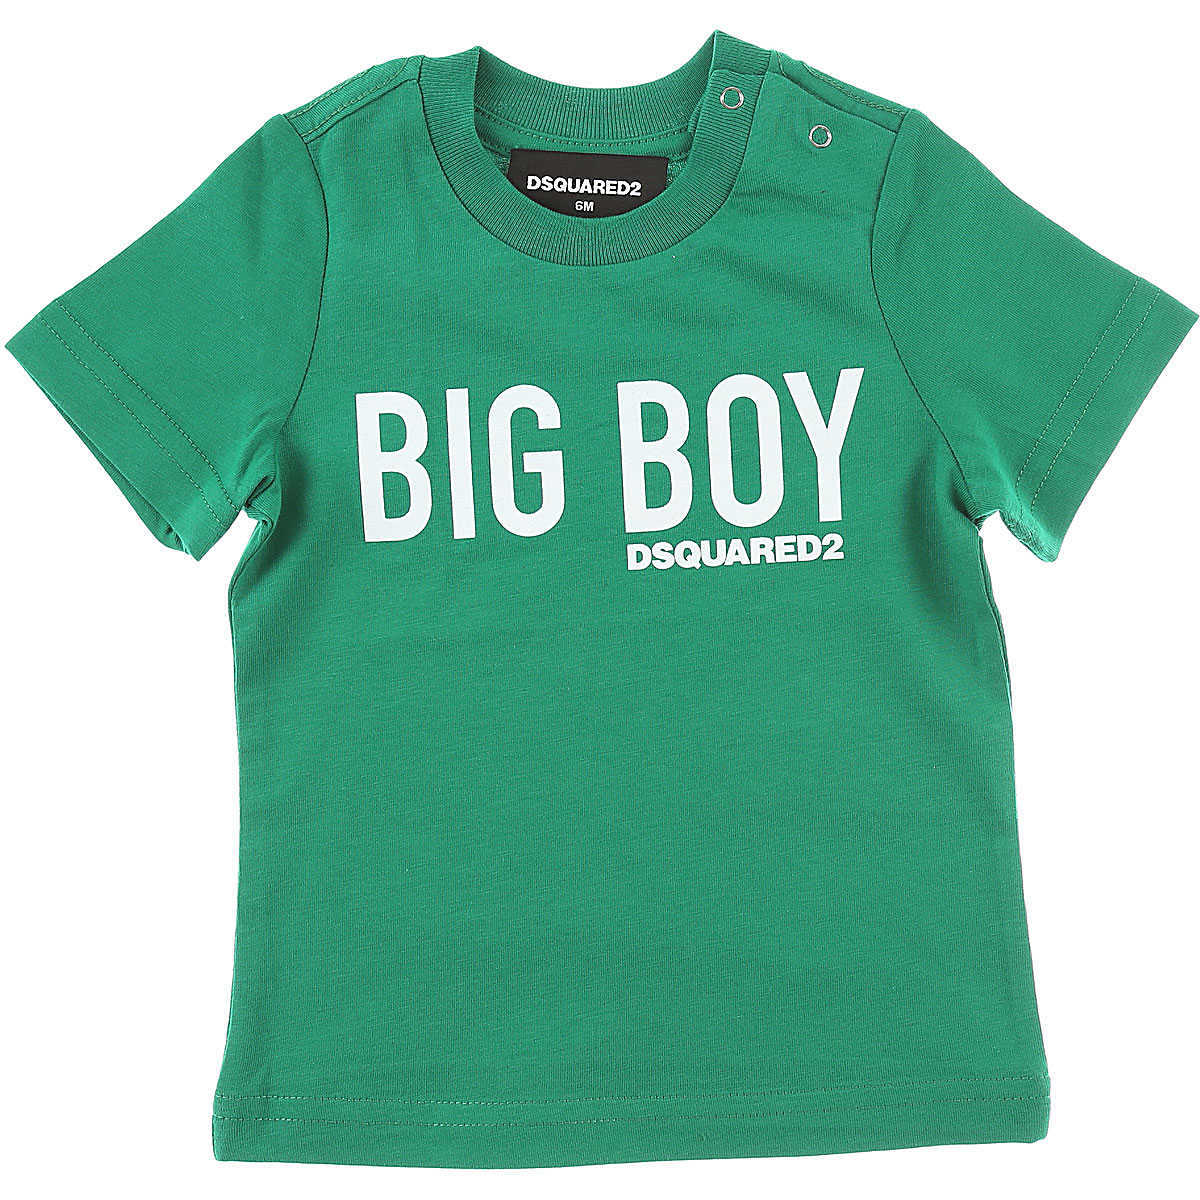 Dsquared2 Baby T-Shirt for Boys On Sale Green UK - GOOFASH - Mens T-SHIRTS